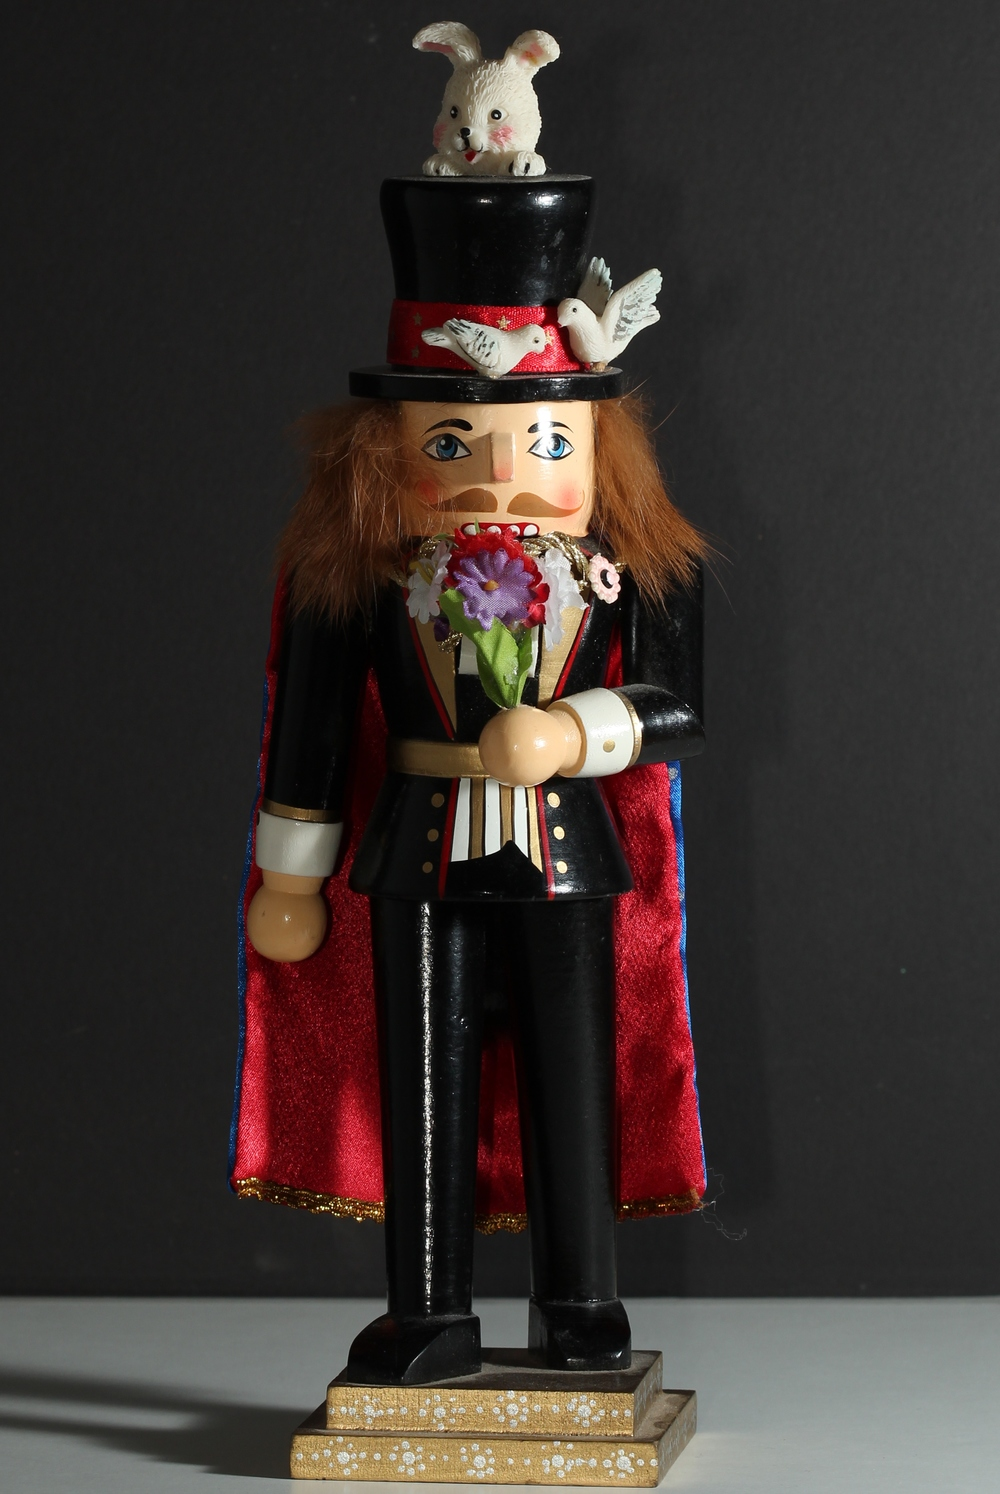 Note: This is a representation of Kyle Foster as a magician. Kyle Foster is not, in fact, a nutcracker.